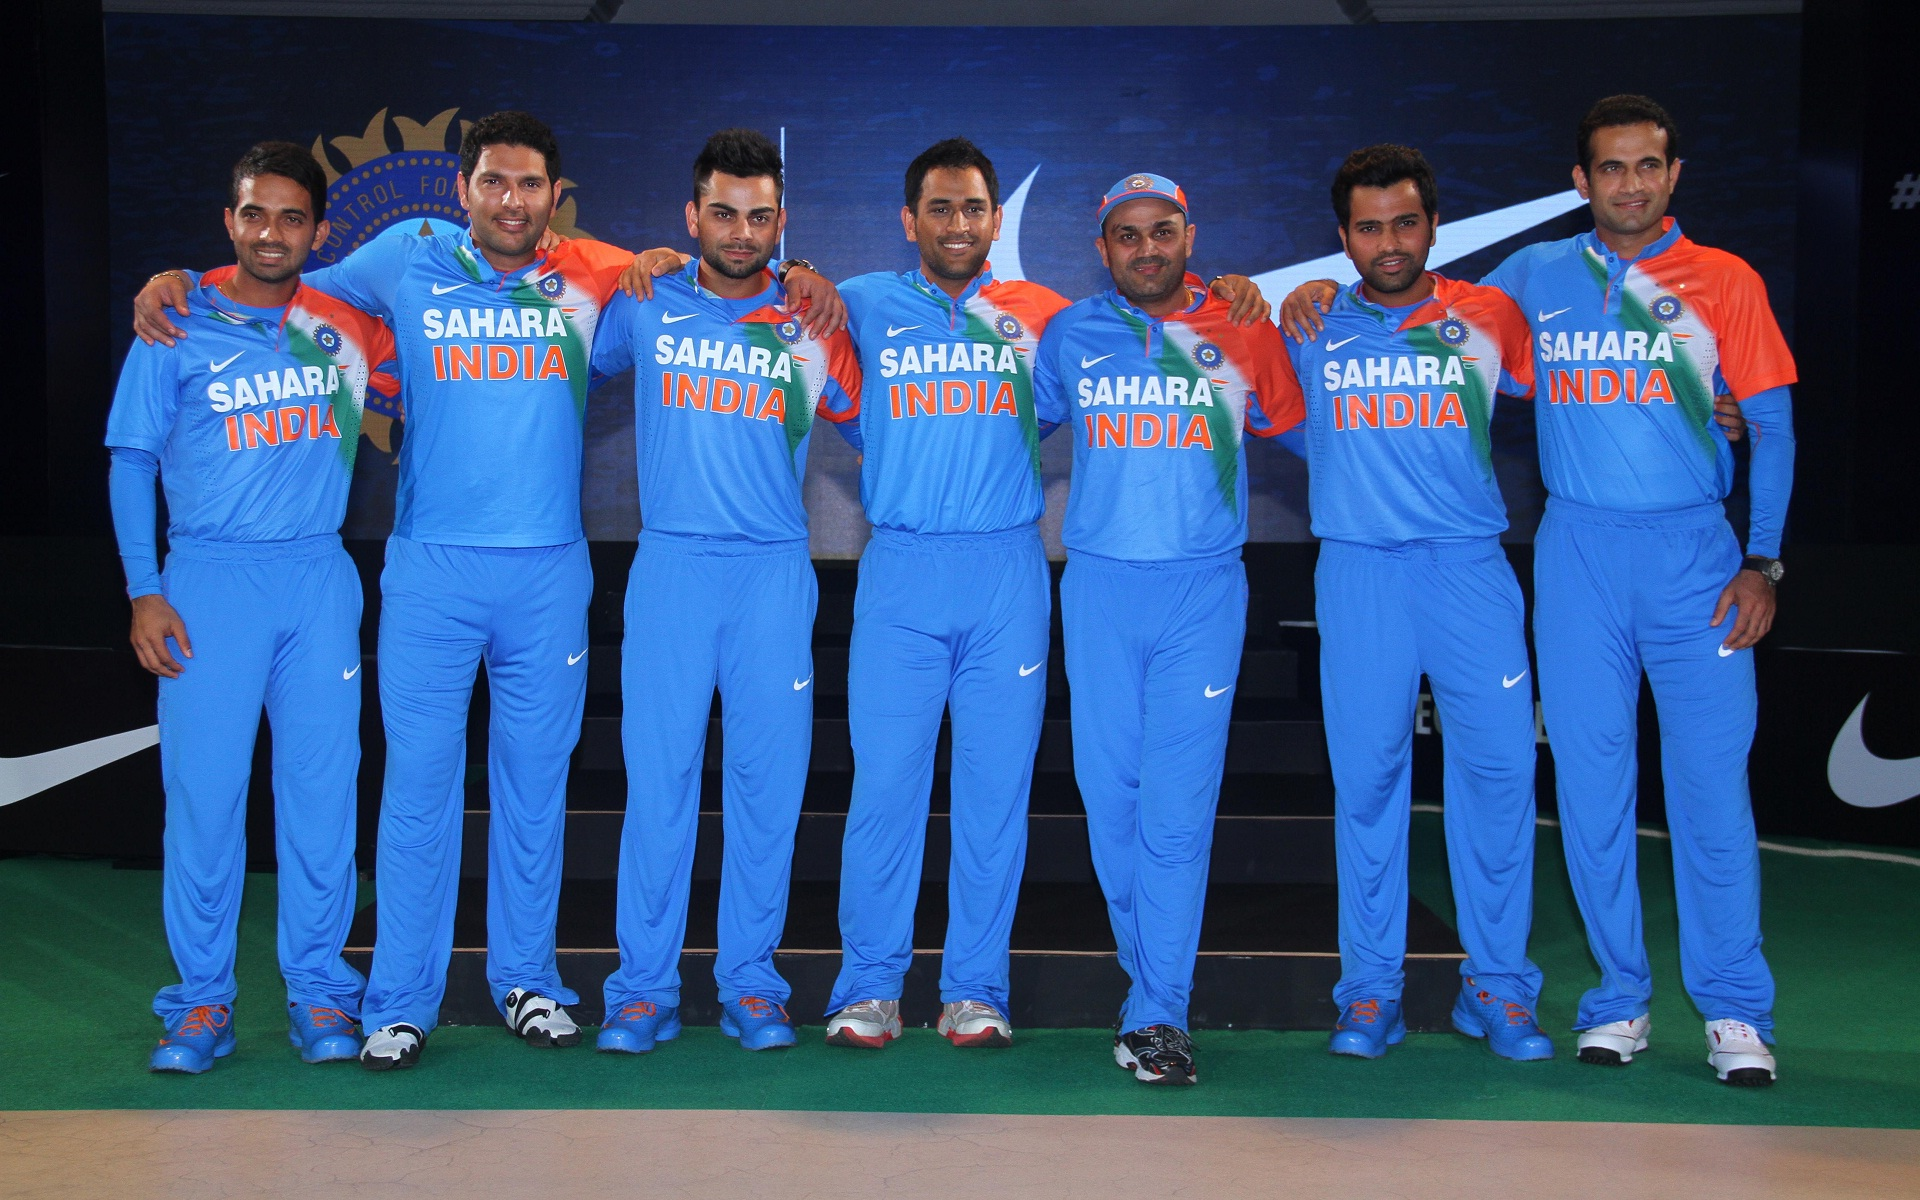 Indian Flag Full Hd Wallpaper Download Indian Cricket Team Hd Wallpapers Gallery